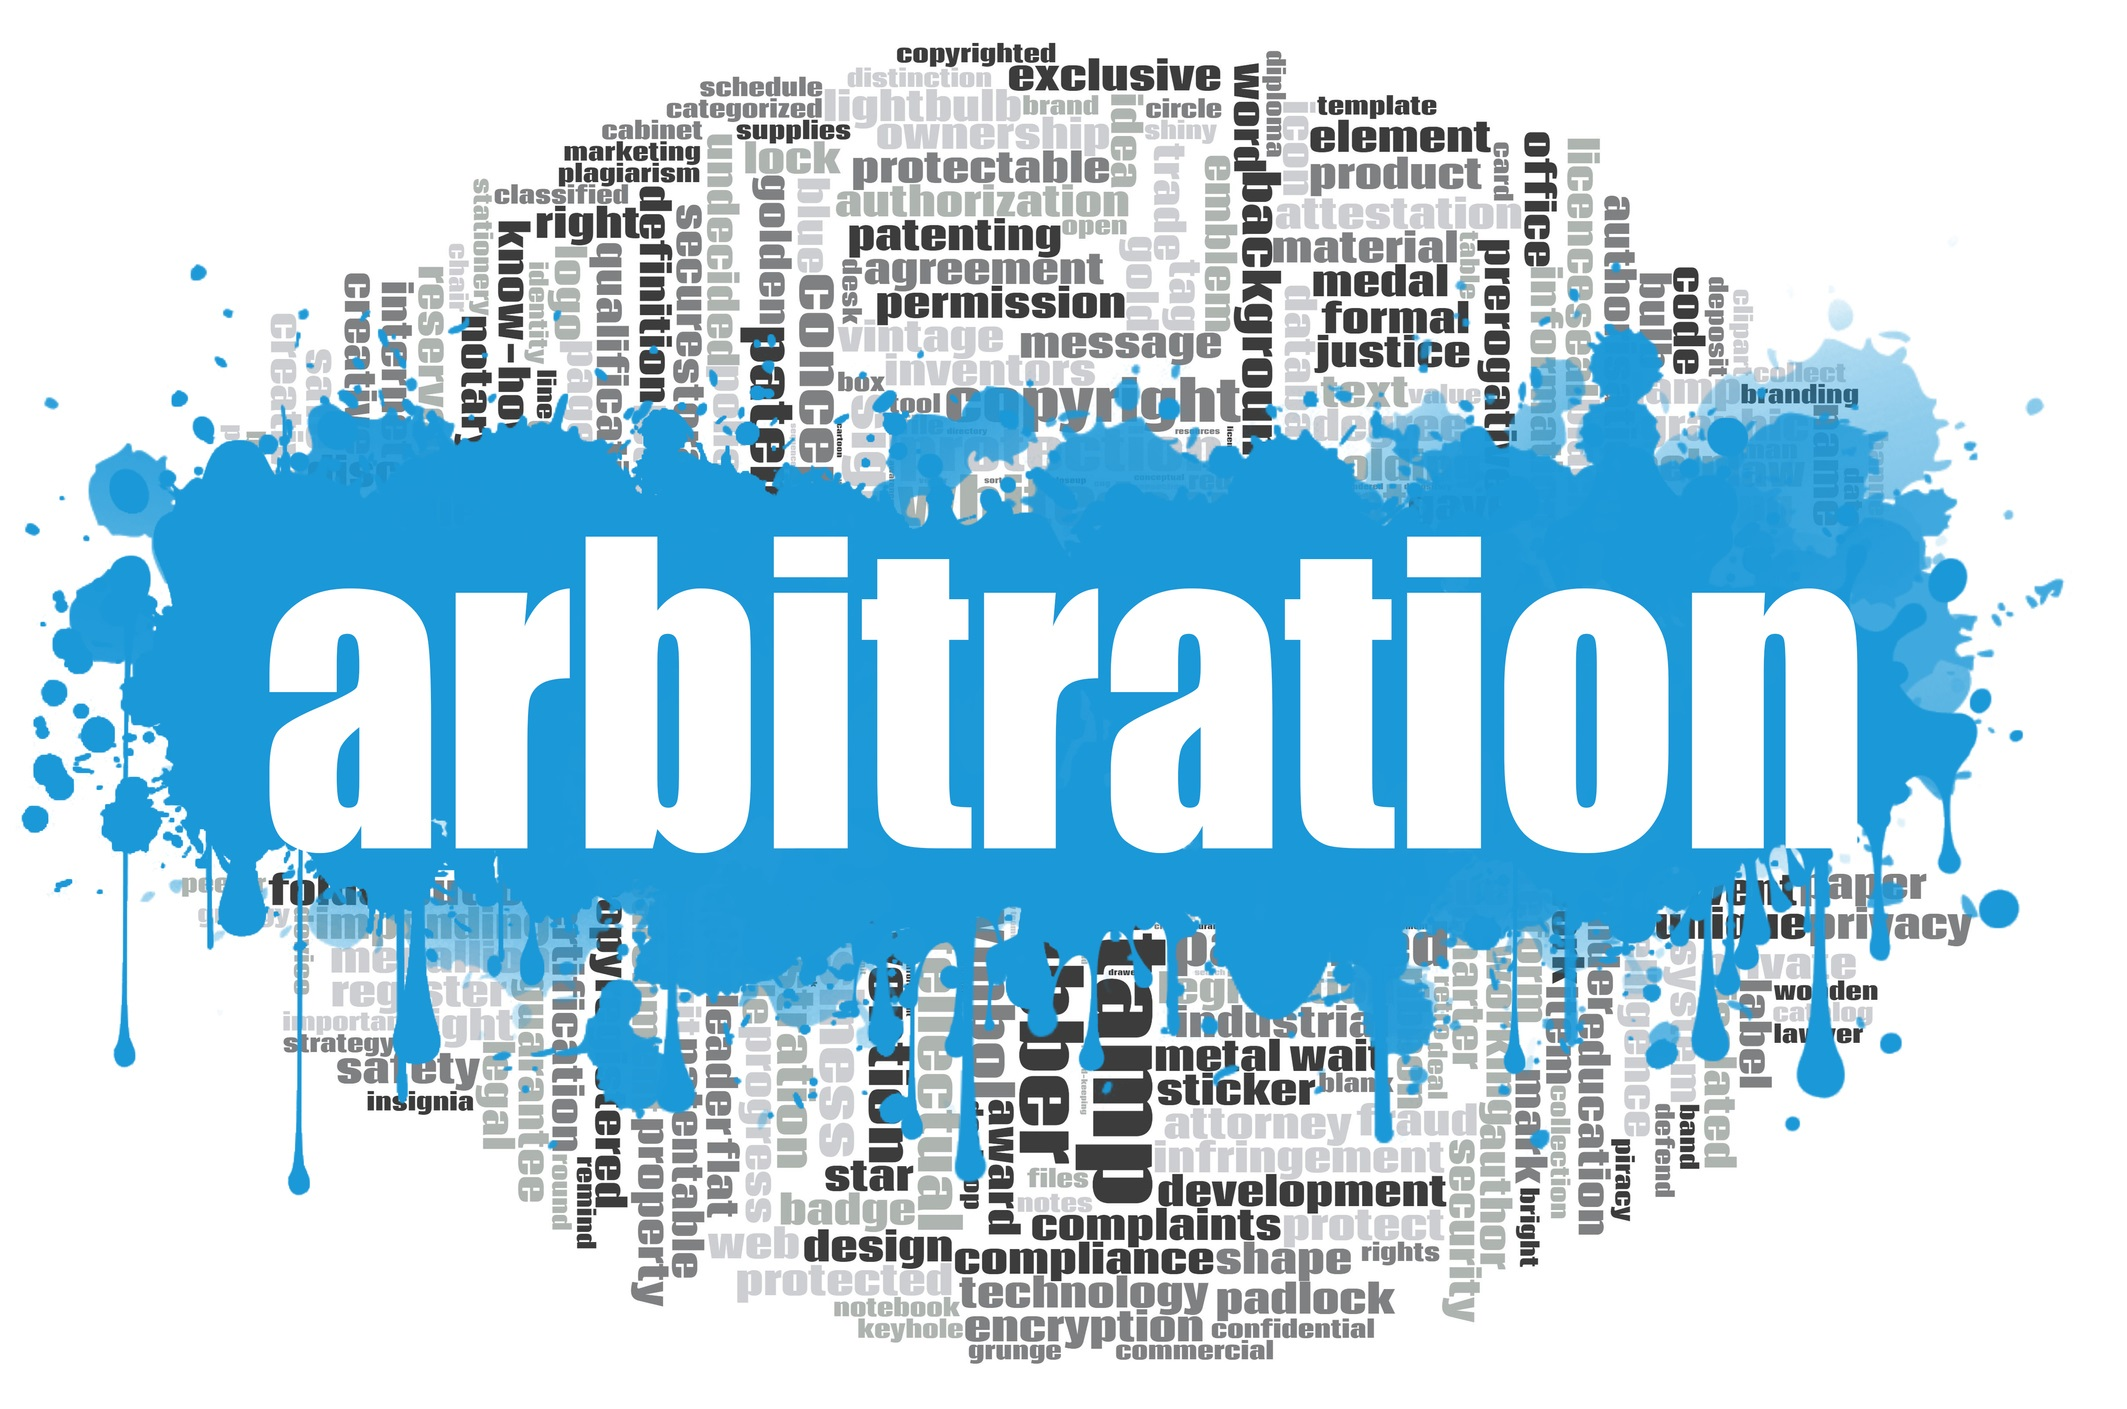 Trends in arbitration agreements